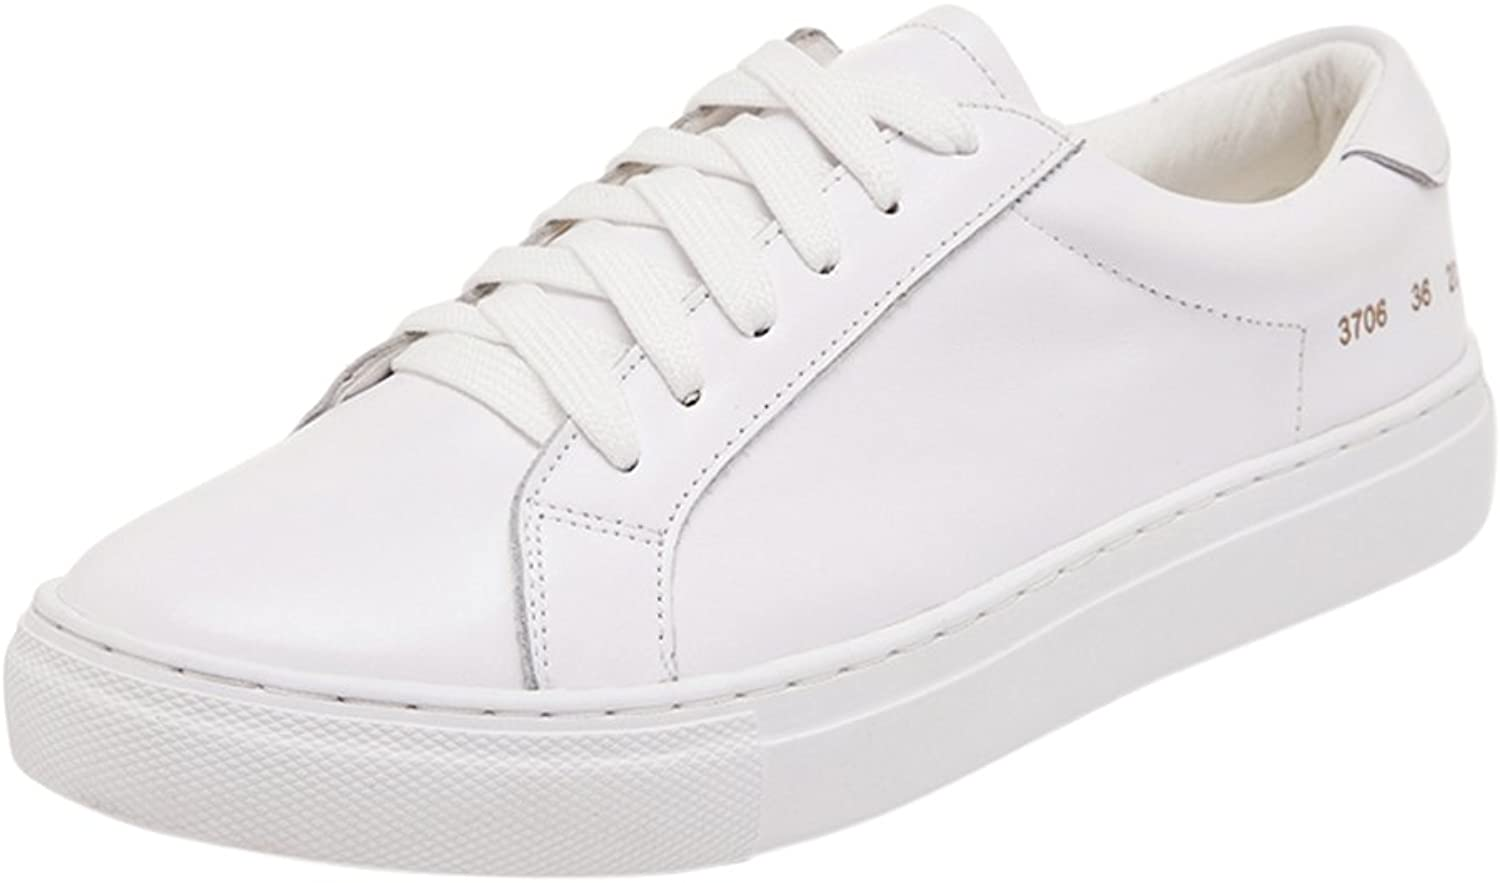 Tortor 1bacha Unisex Teenager Adult Leather Simple Fashion White Sneaker